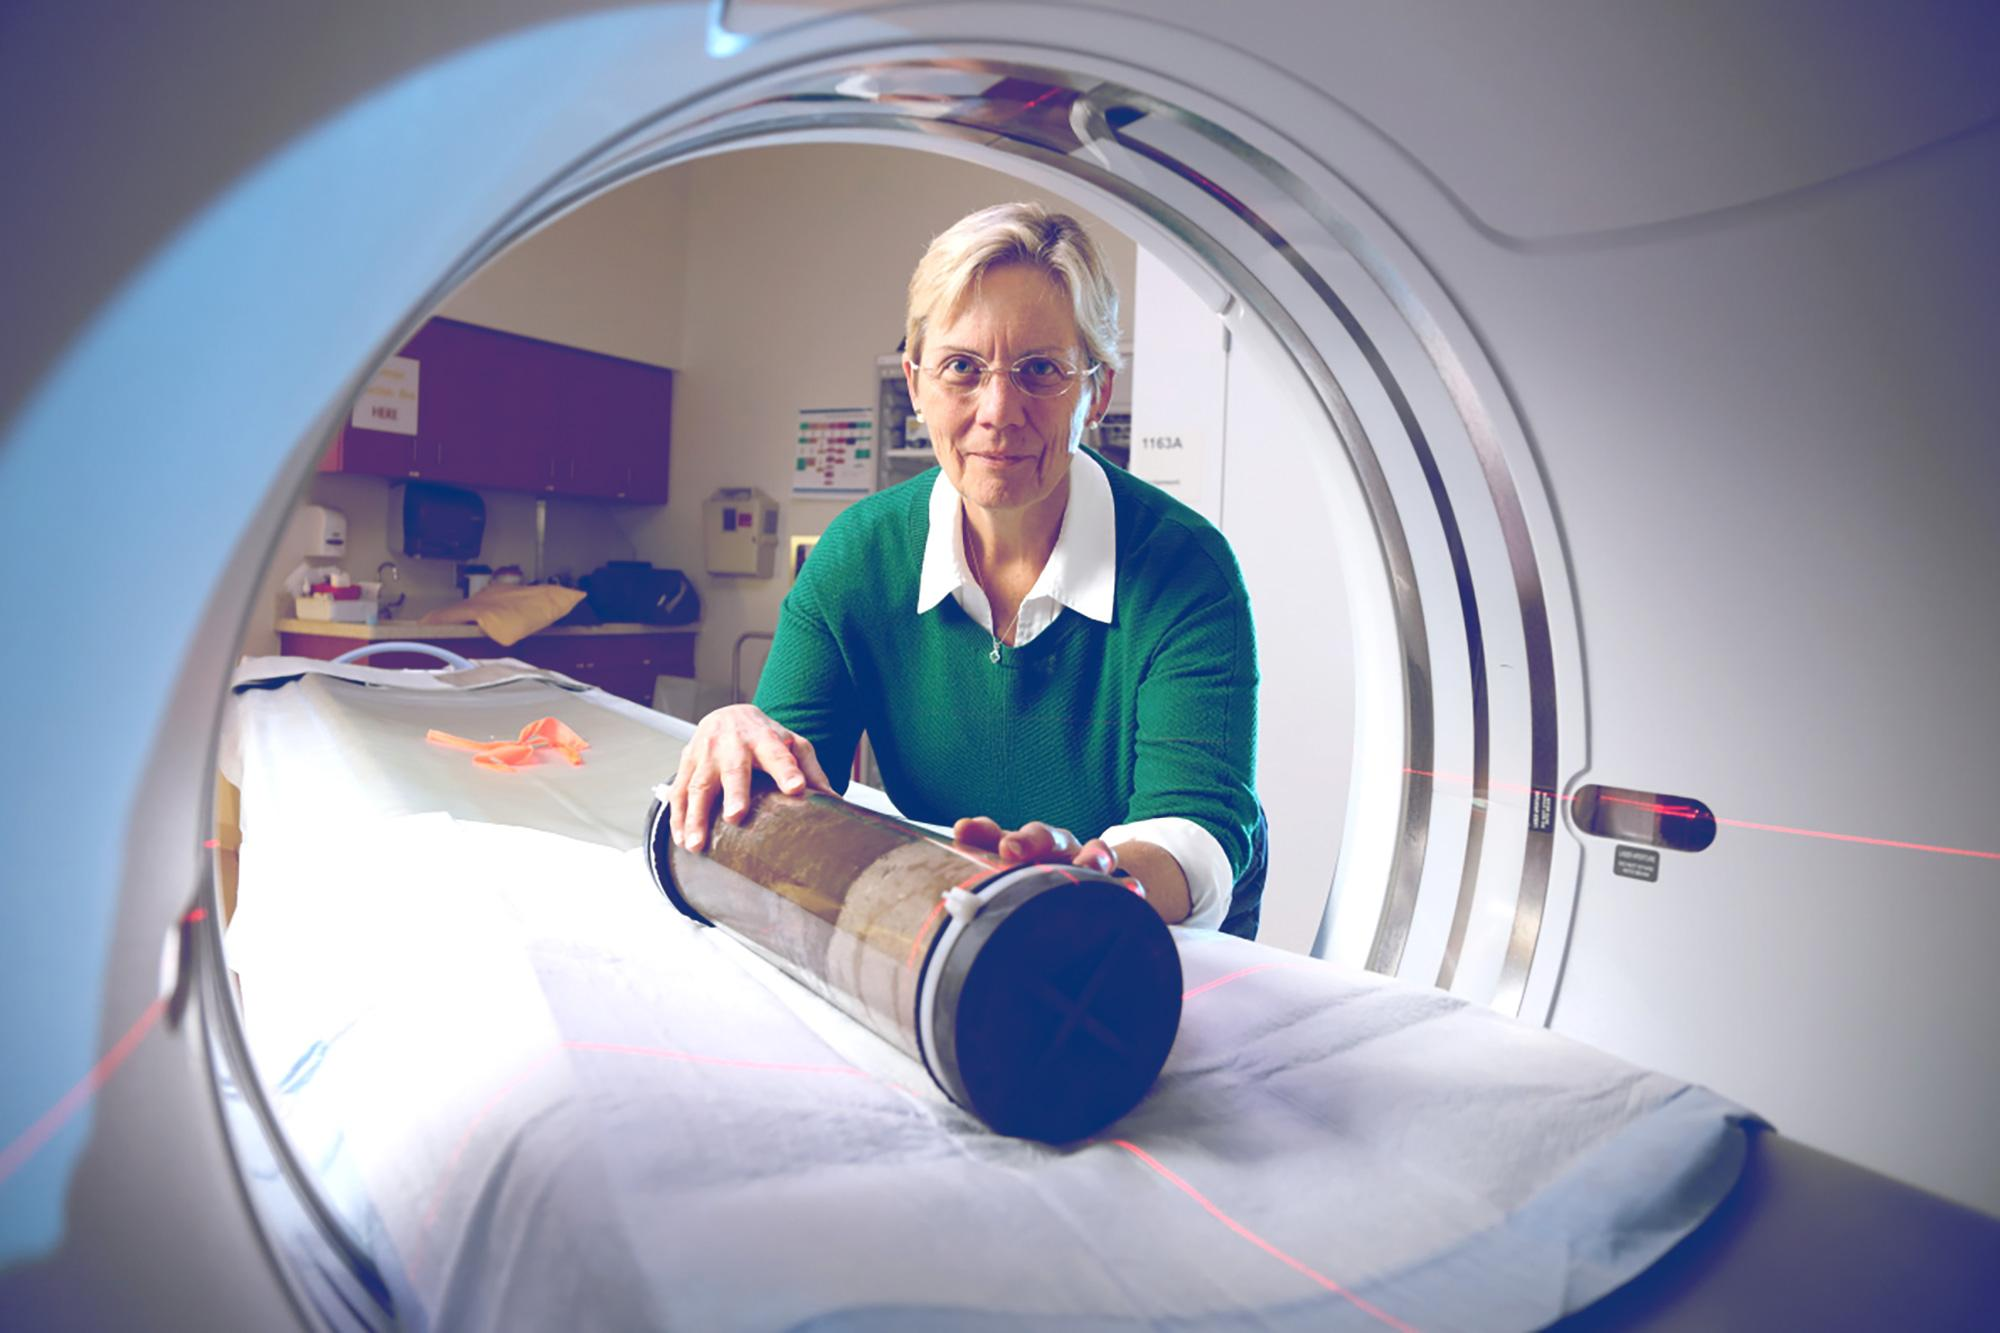 Environmental scientist Linda Blum uses CT scan facilities at the UVA Health System to examine salt marsh core samples.